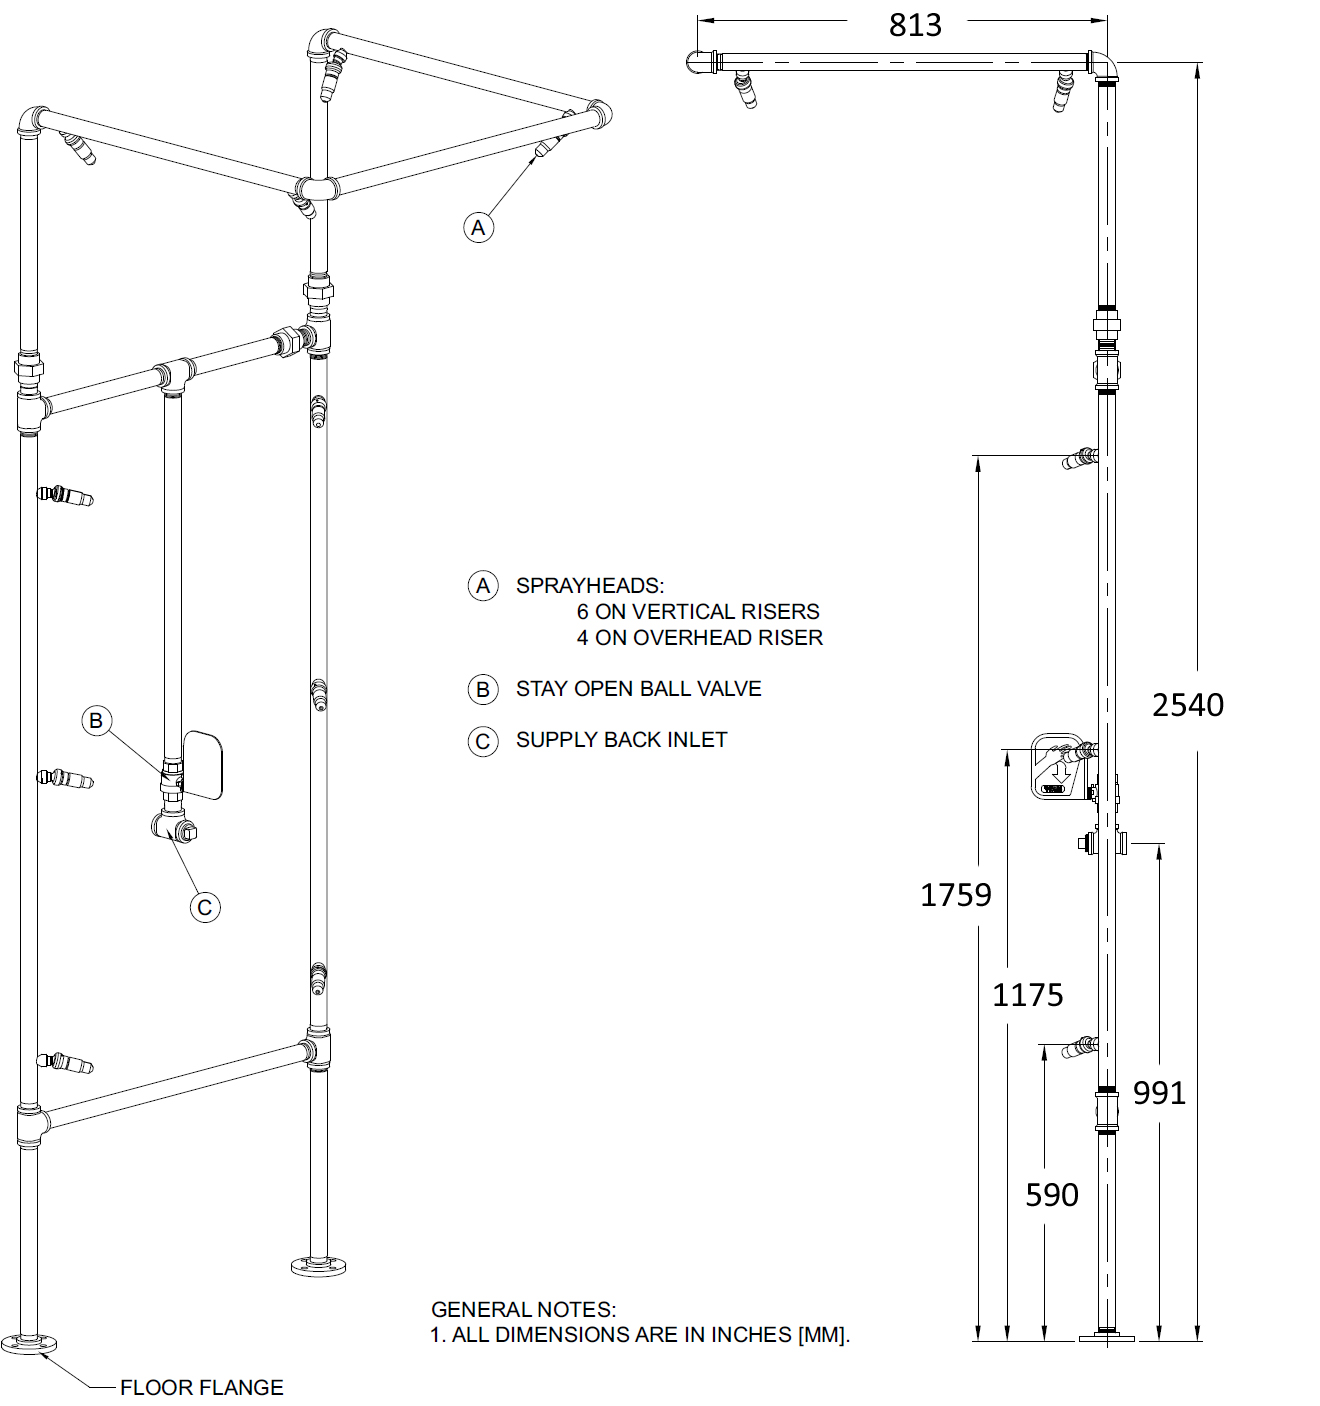 decontamination shower dimensions